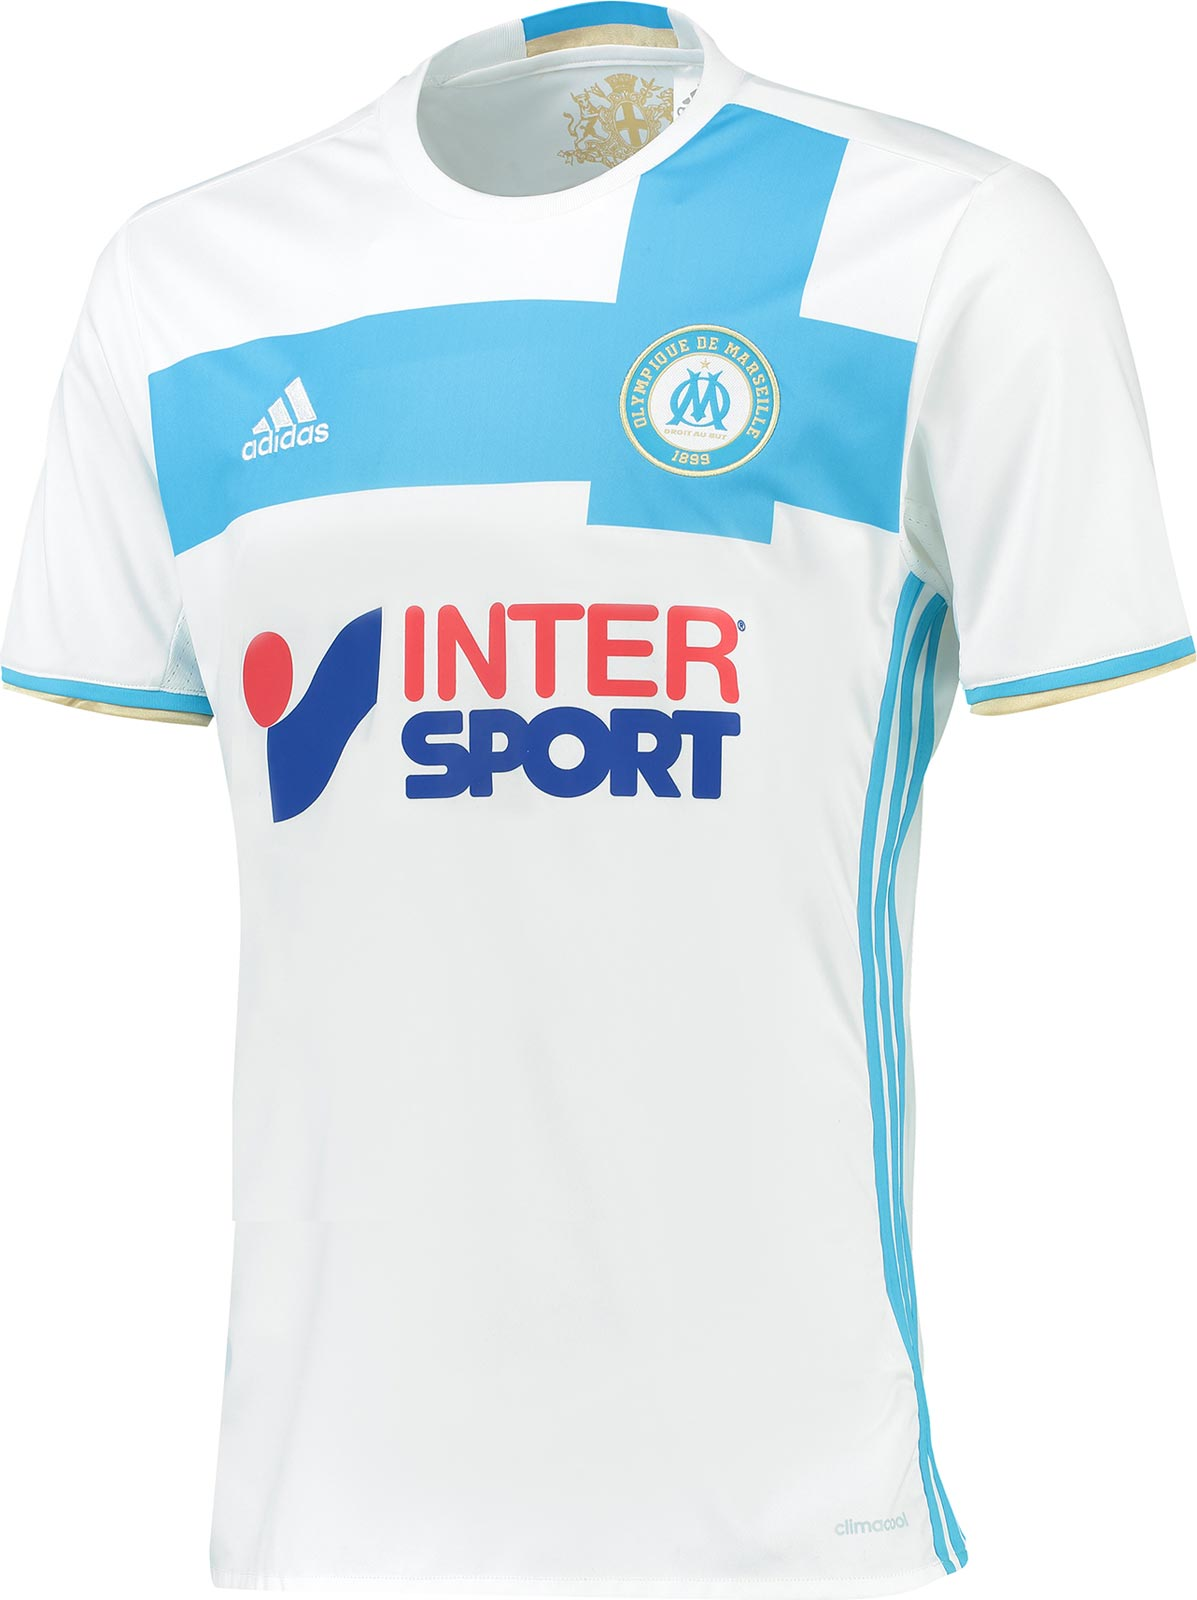 olympique-marseille-16-17-home-kit-1.jpg